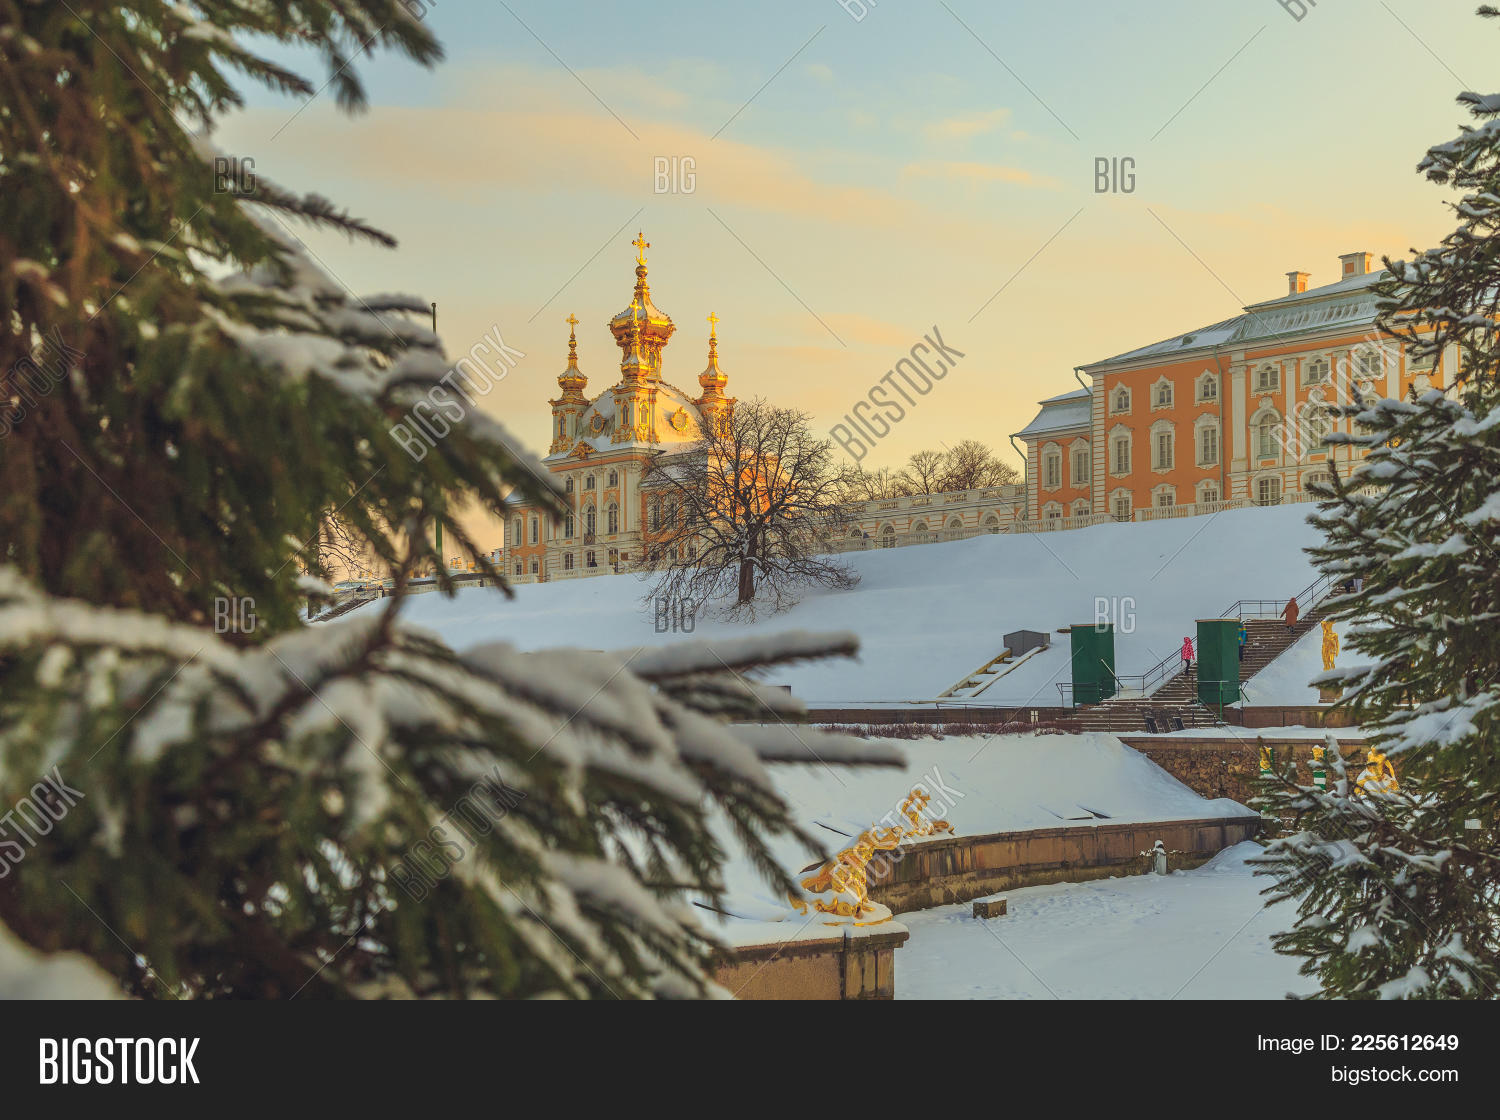 Saint-Petersburg Powerpoint Template - 60 Slides